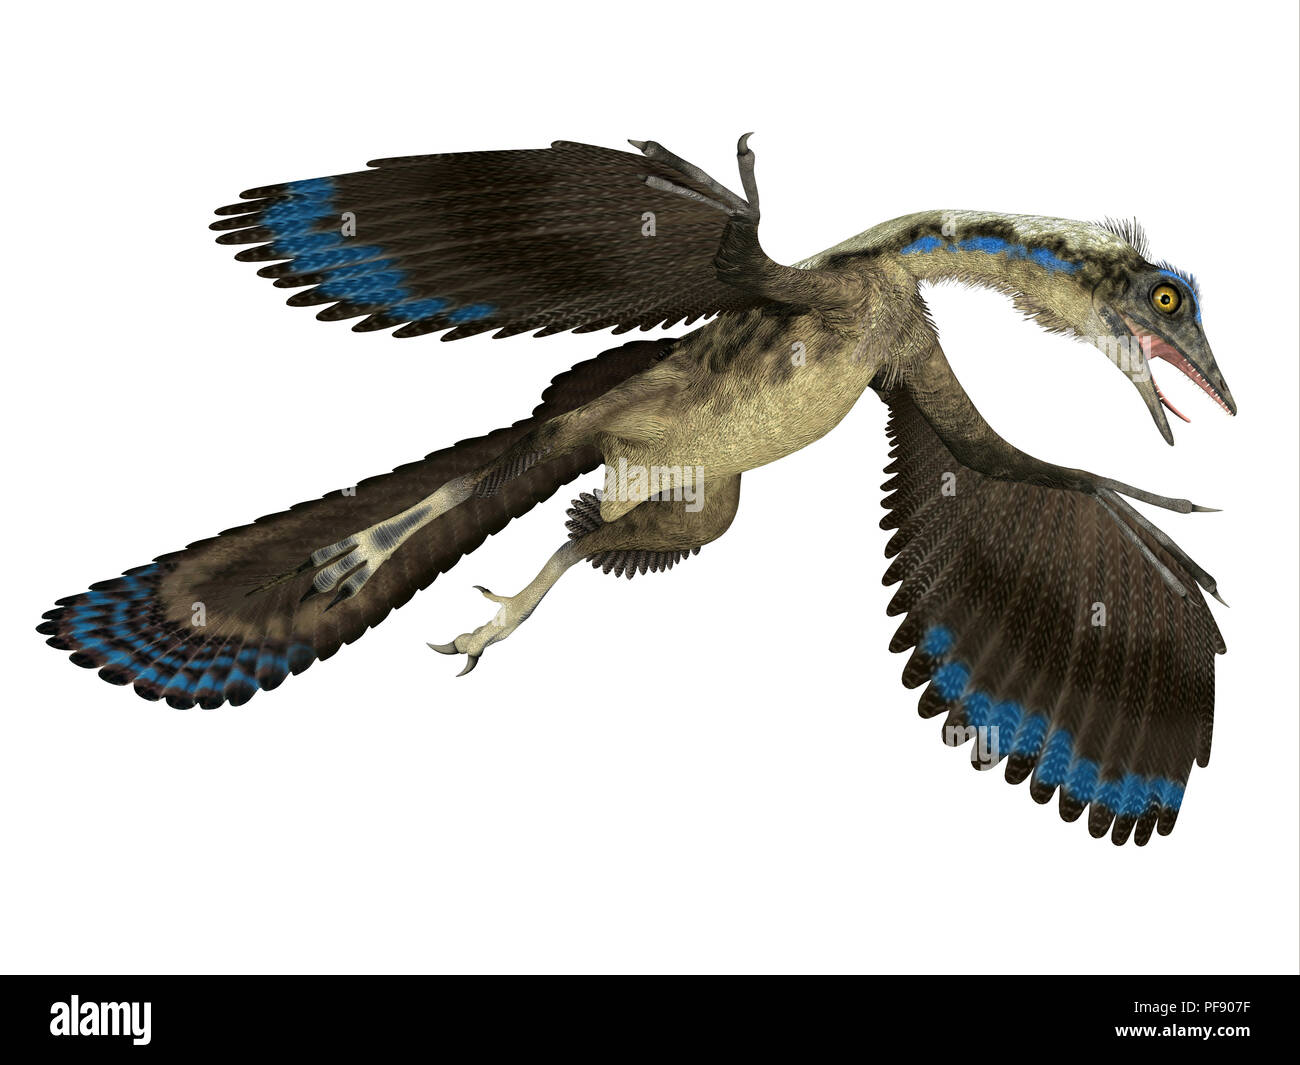 Archaeopteryx Reptile  - Archaeopteryx was a carnivorous Pterosaur reptile that lived in Germany during the Jurassic Period. - Stock Image